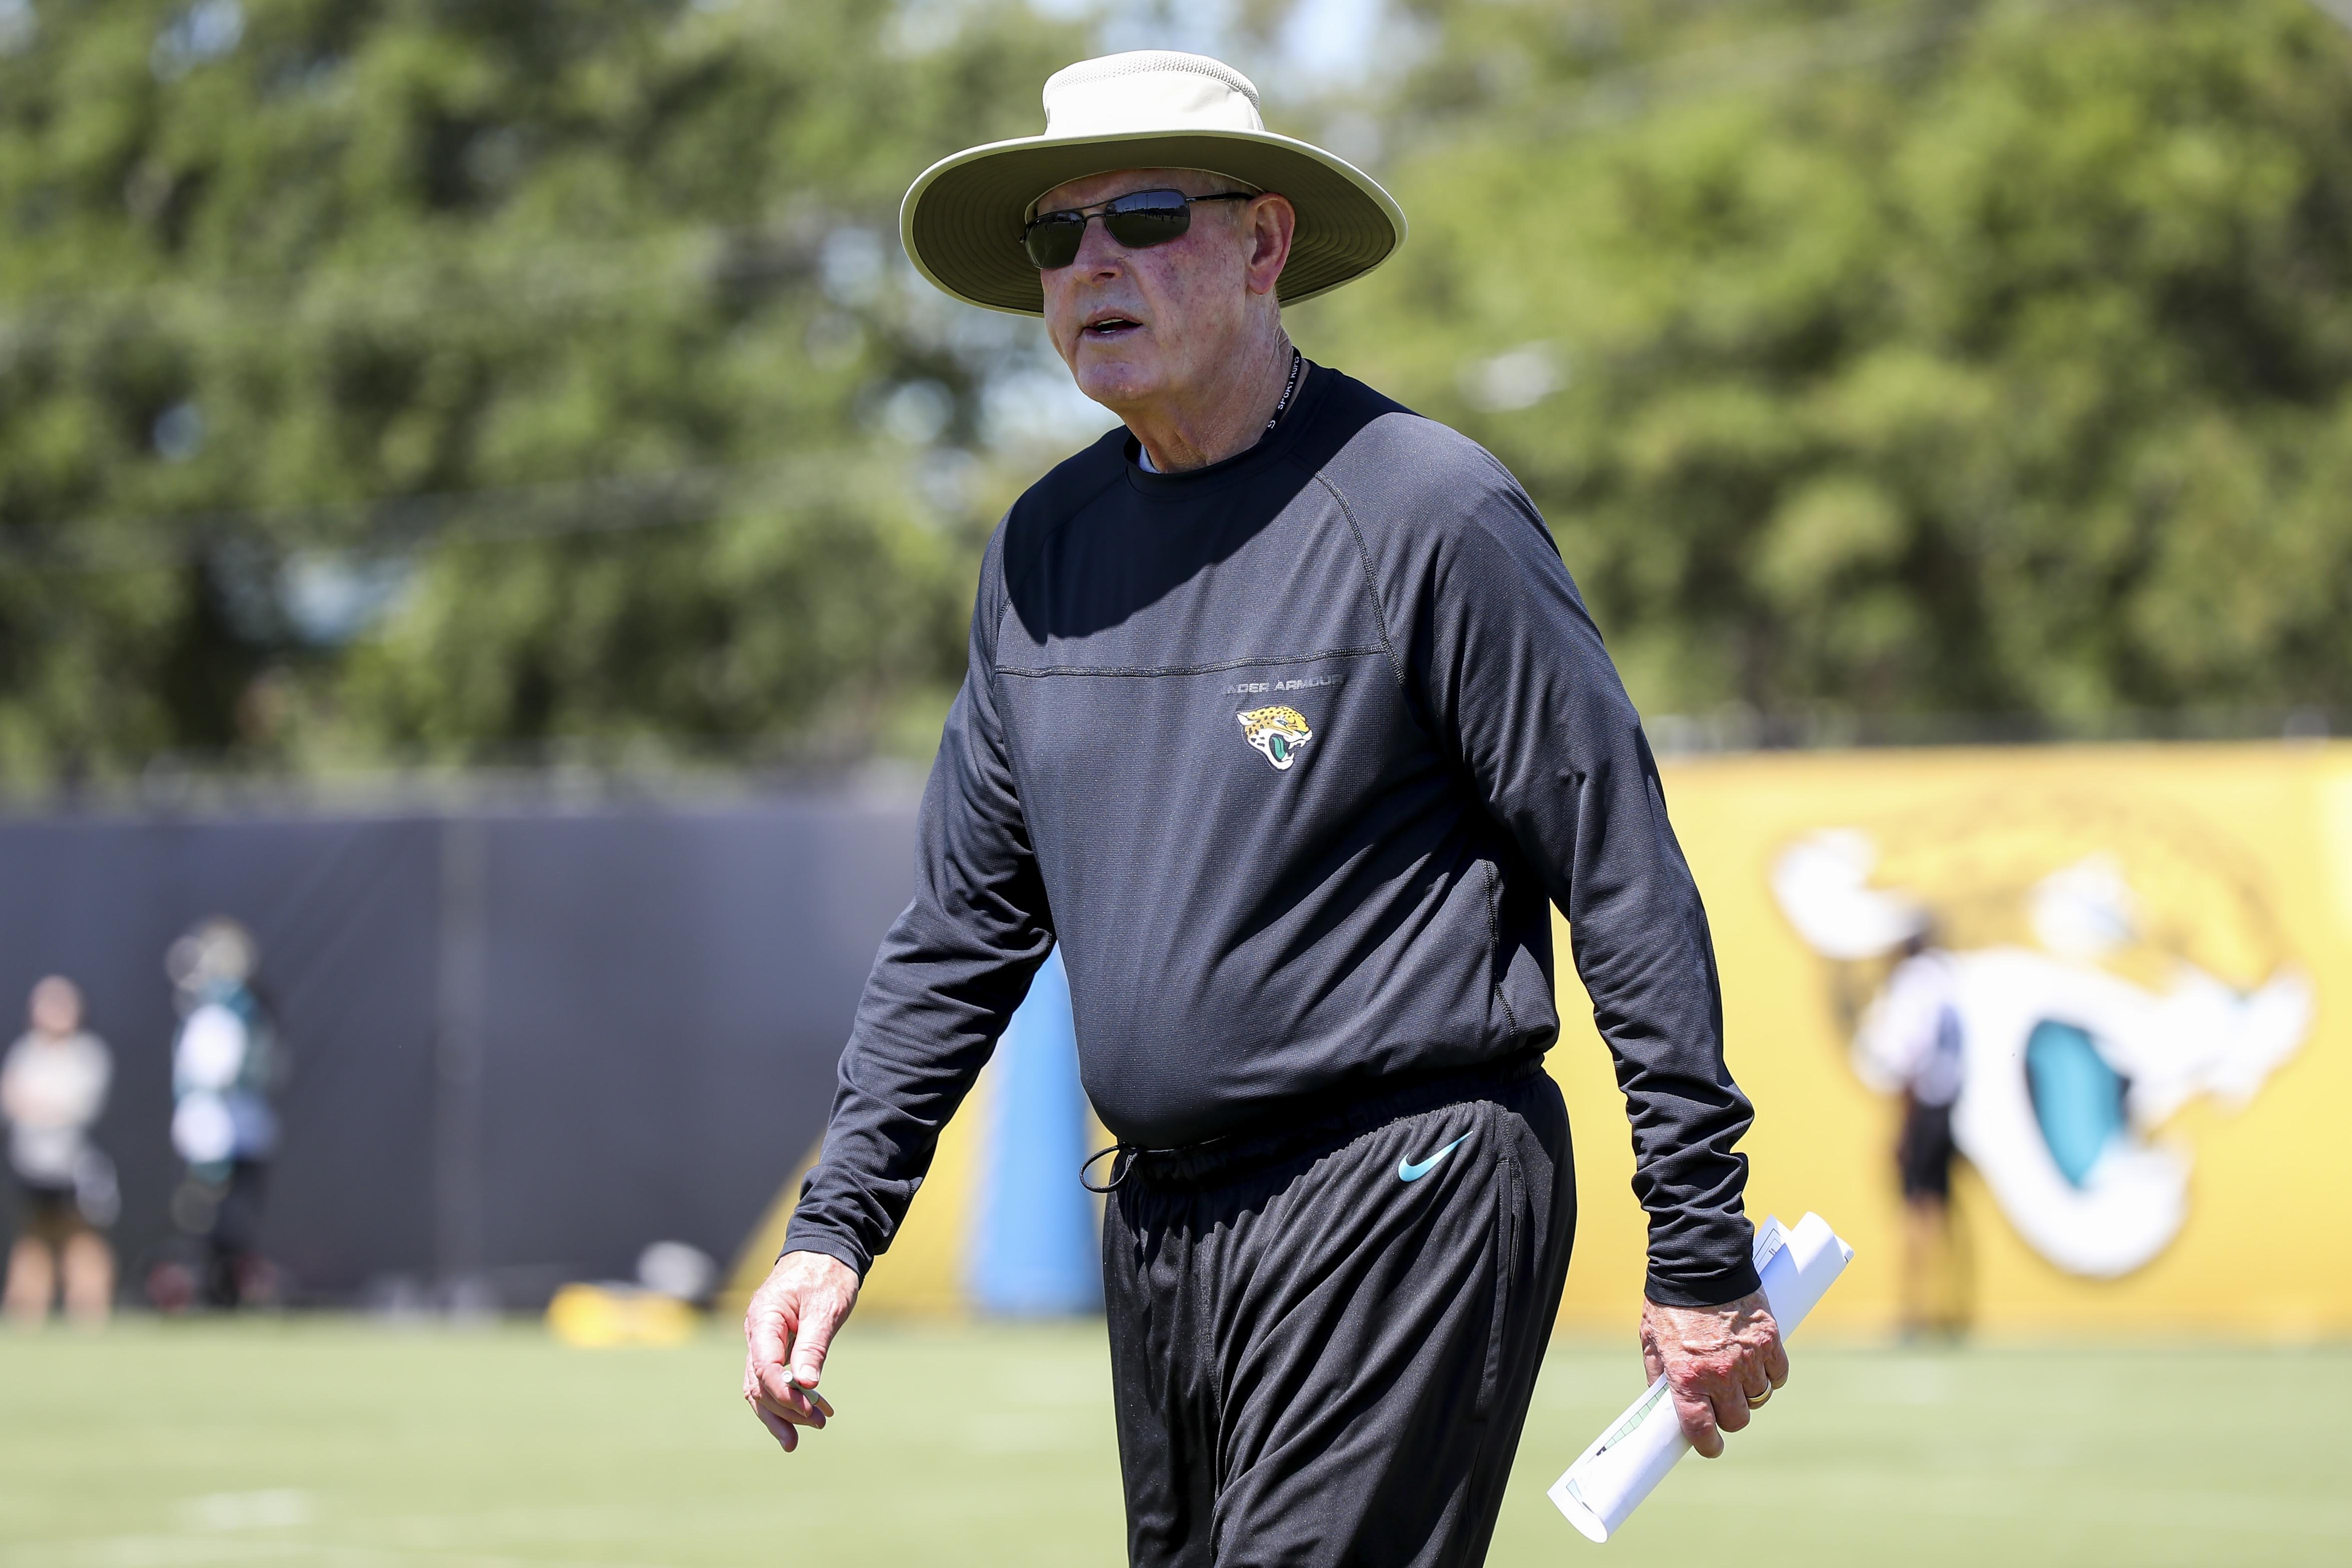 LAMM AT LARGE: Jaguars secrecy does team no favors